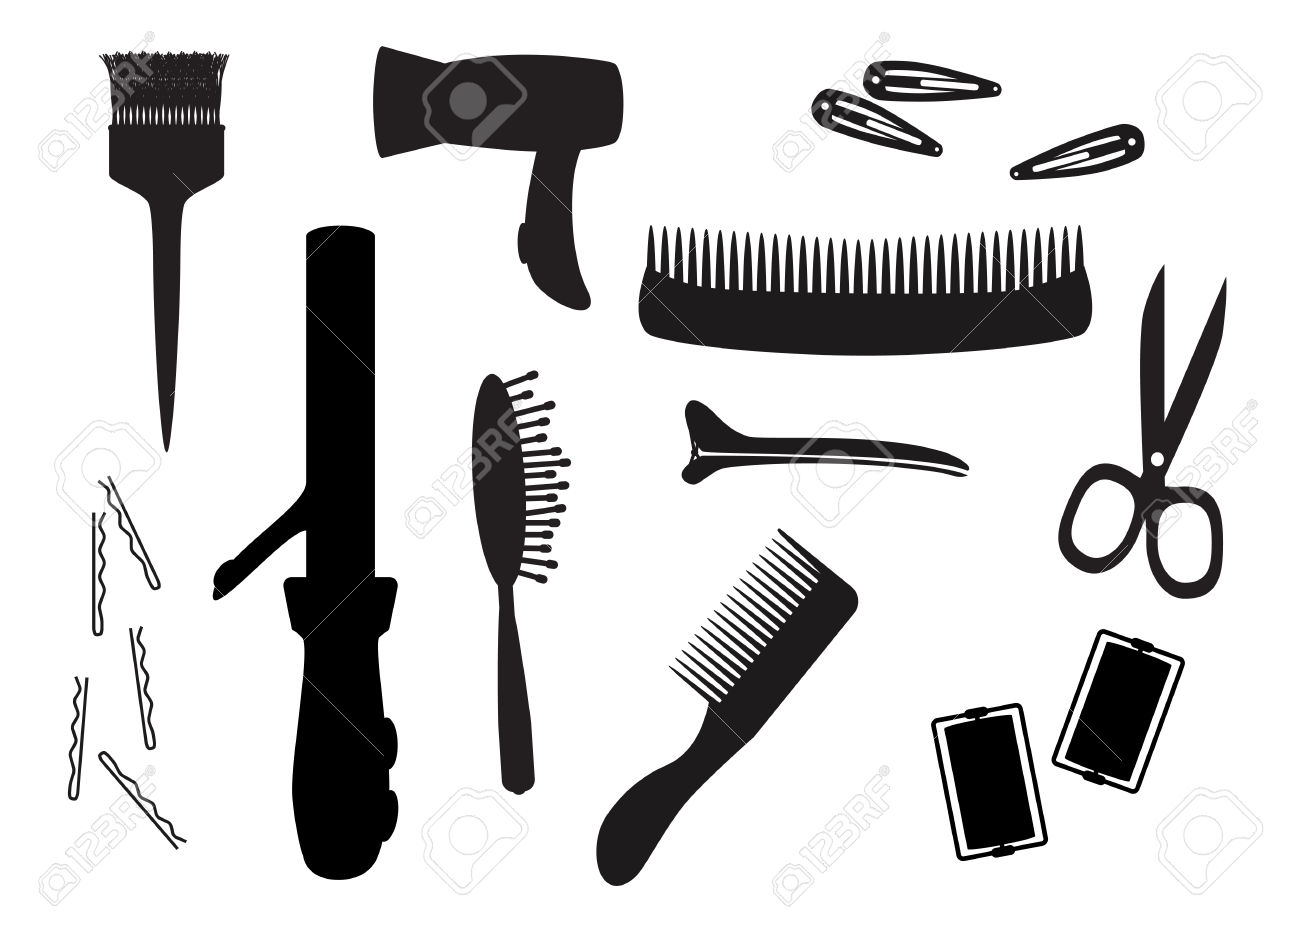 1300x928 Cuisine Hairdressing Equipment Images Amp Stock Pictures Royalty